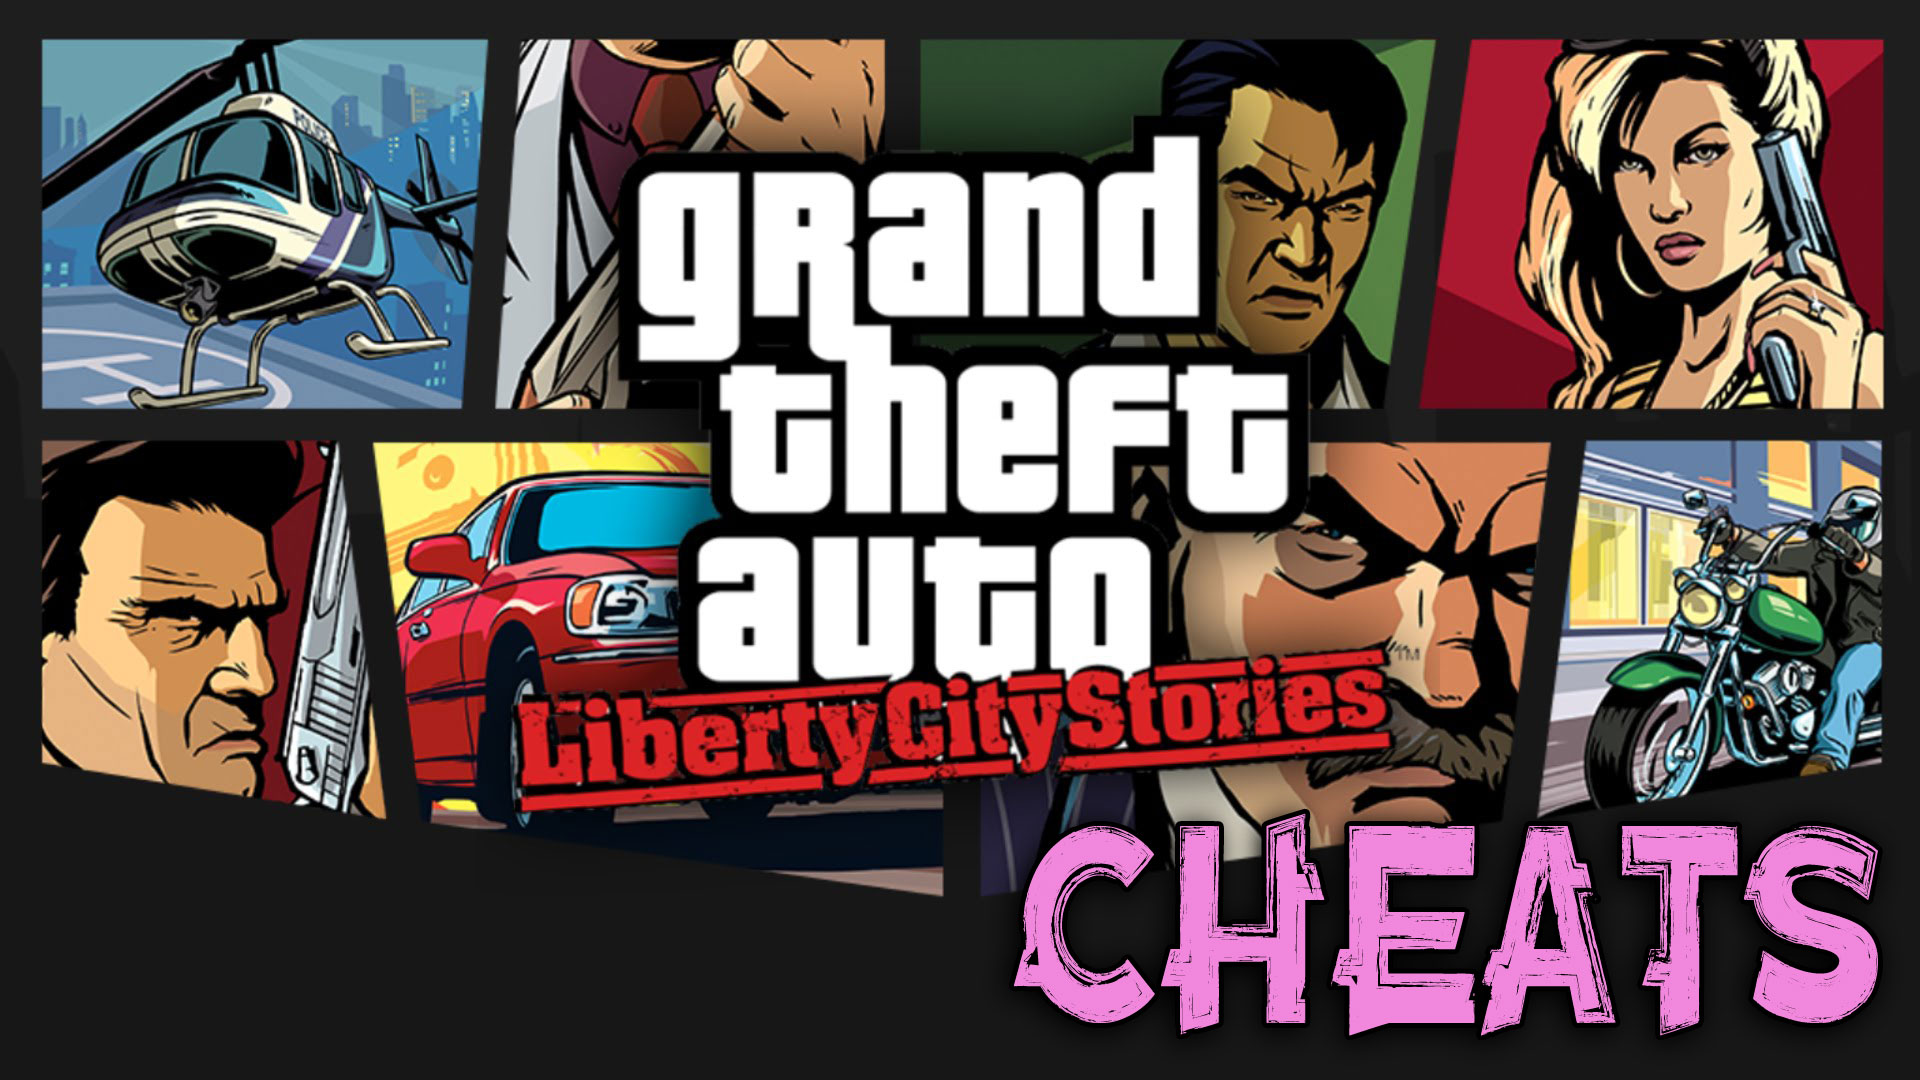 Grand theft auto gta liberty city stories cheats